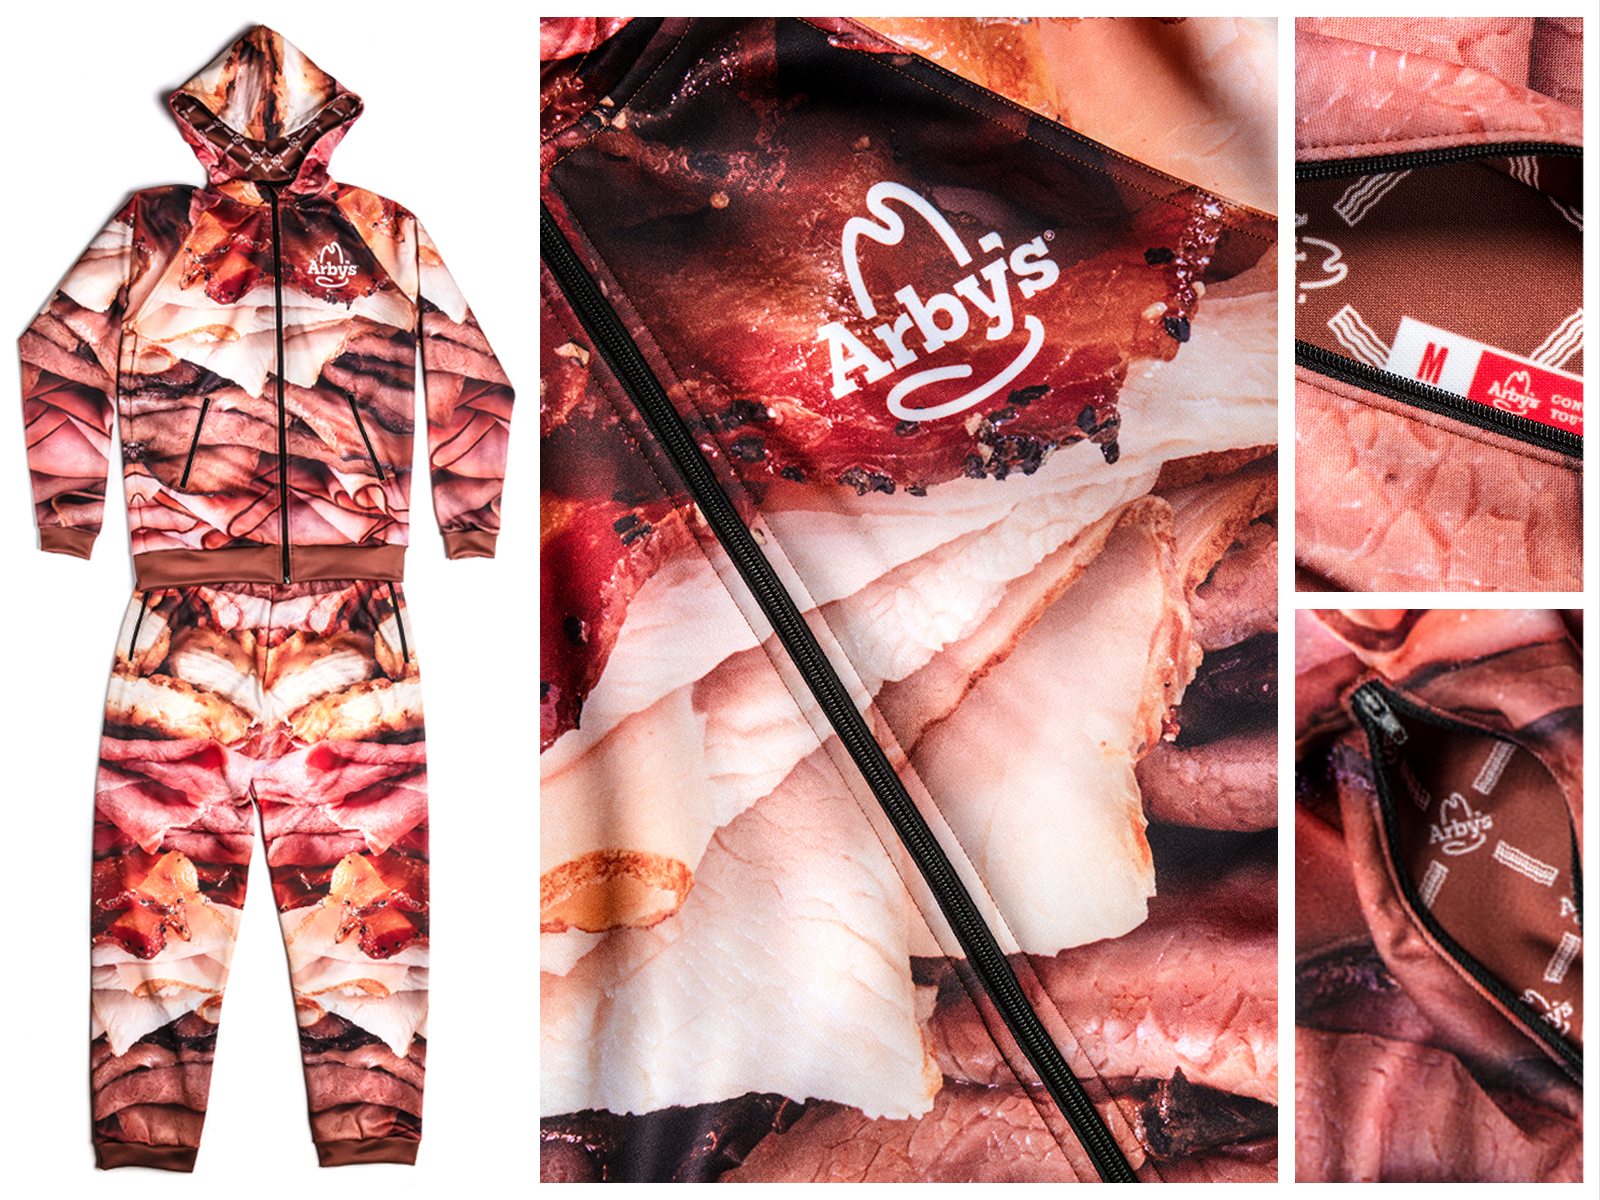 arbys meat sweats detail photographs